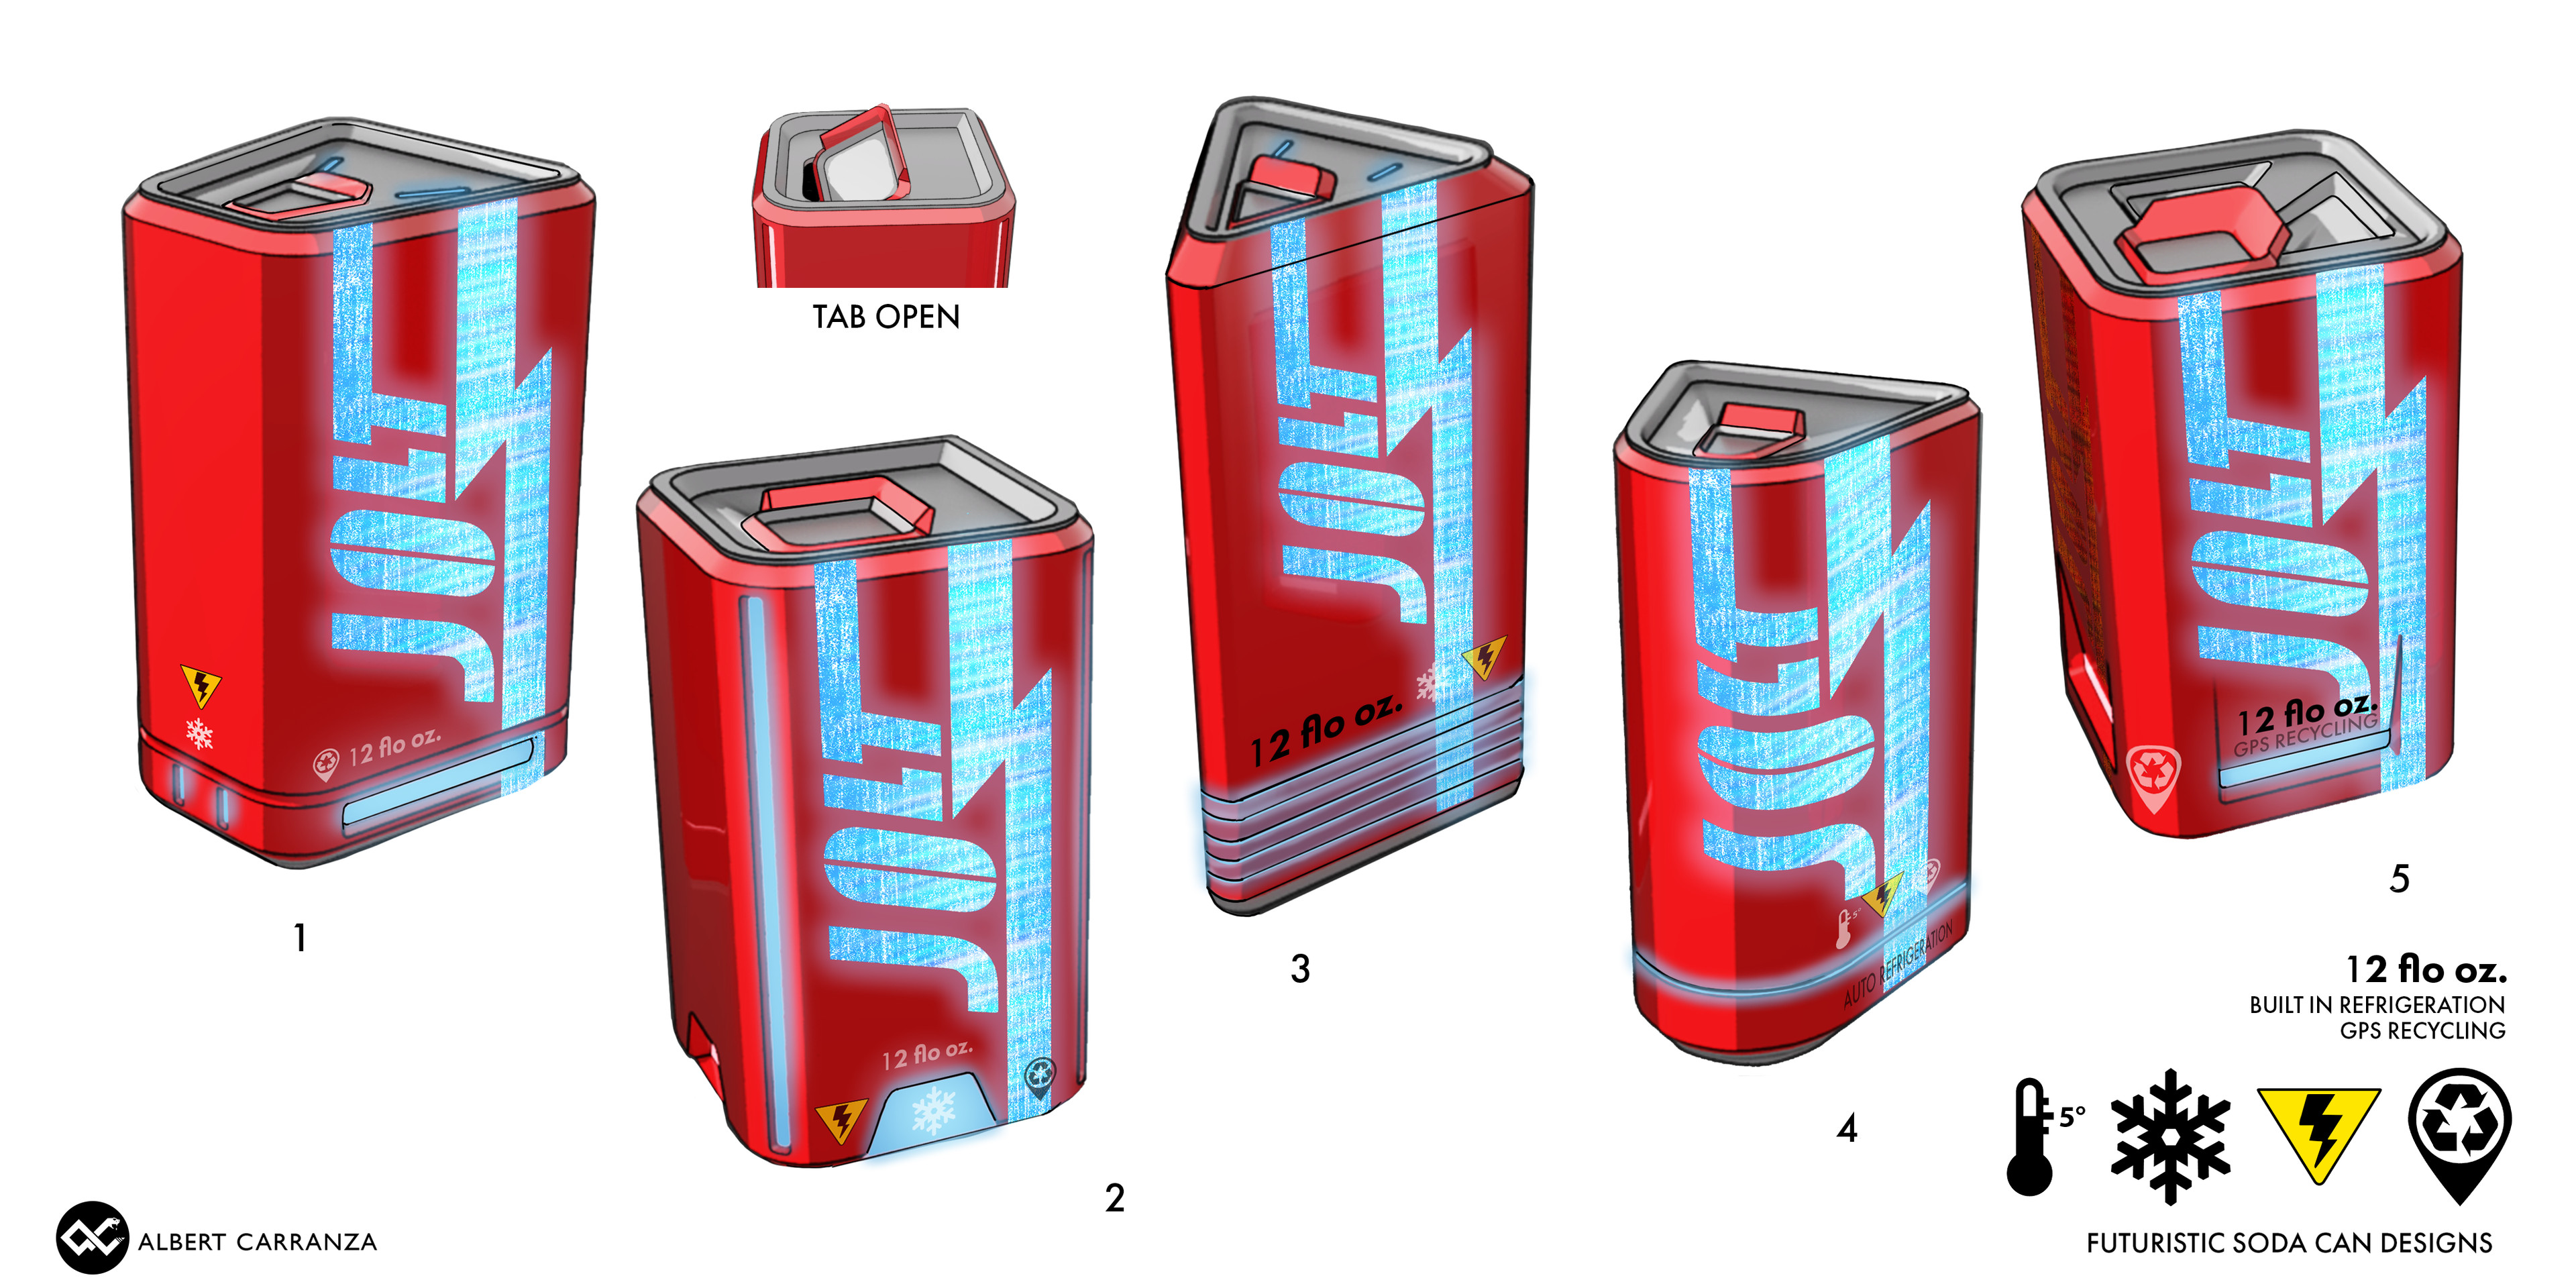 Cyberpunk Soda Can Concept complete with Self Refrigeration and GPS Tracking for recyclobots to collect and reuse.